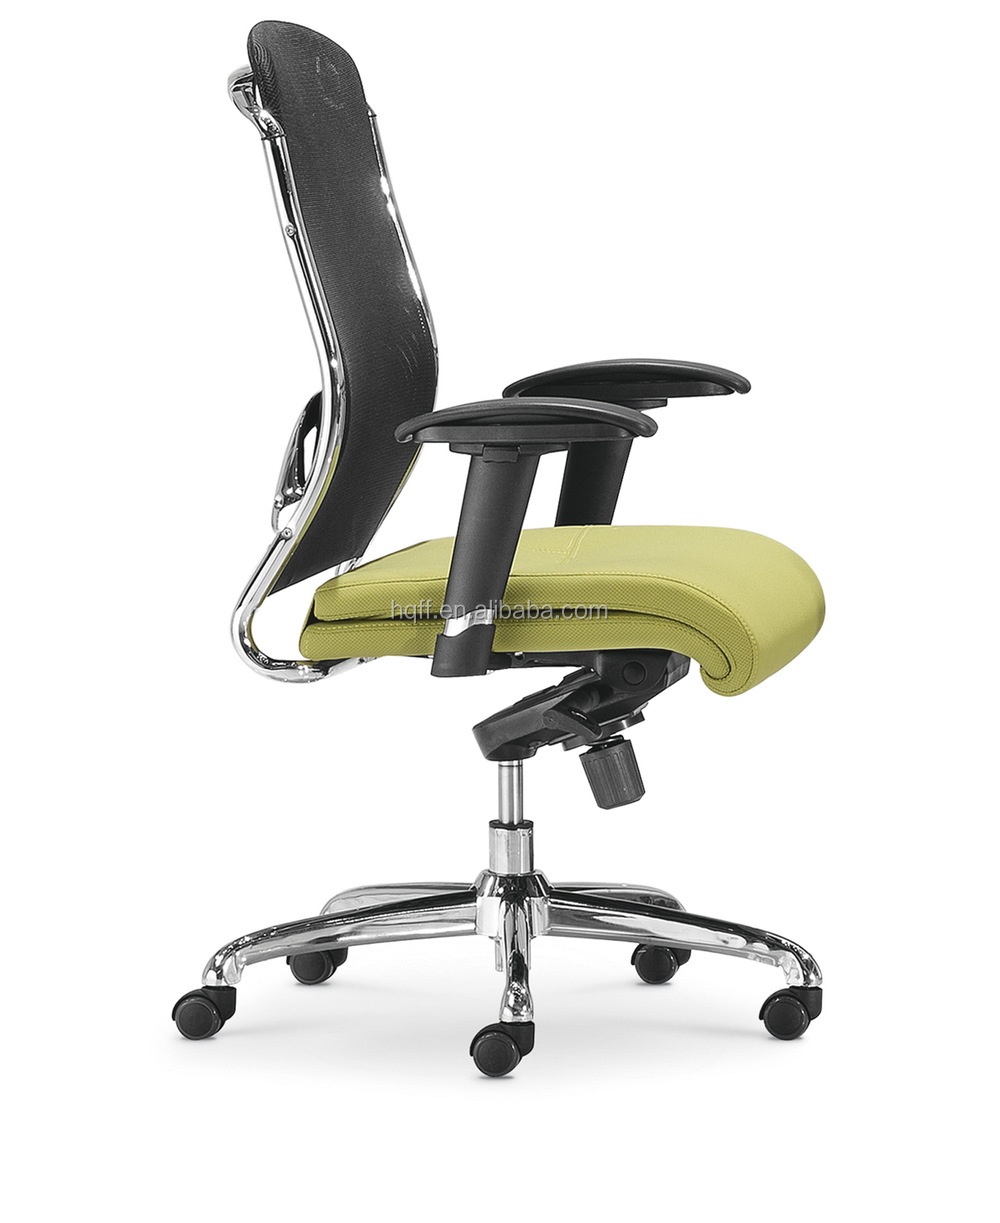 godrej executive chairs stackable mesh chairs office chair